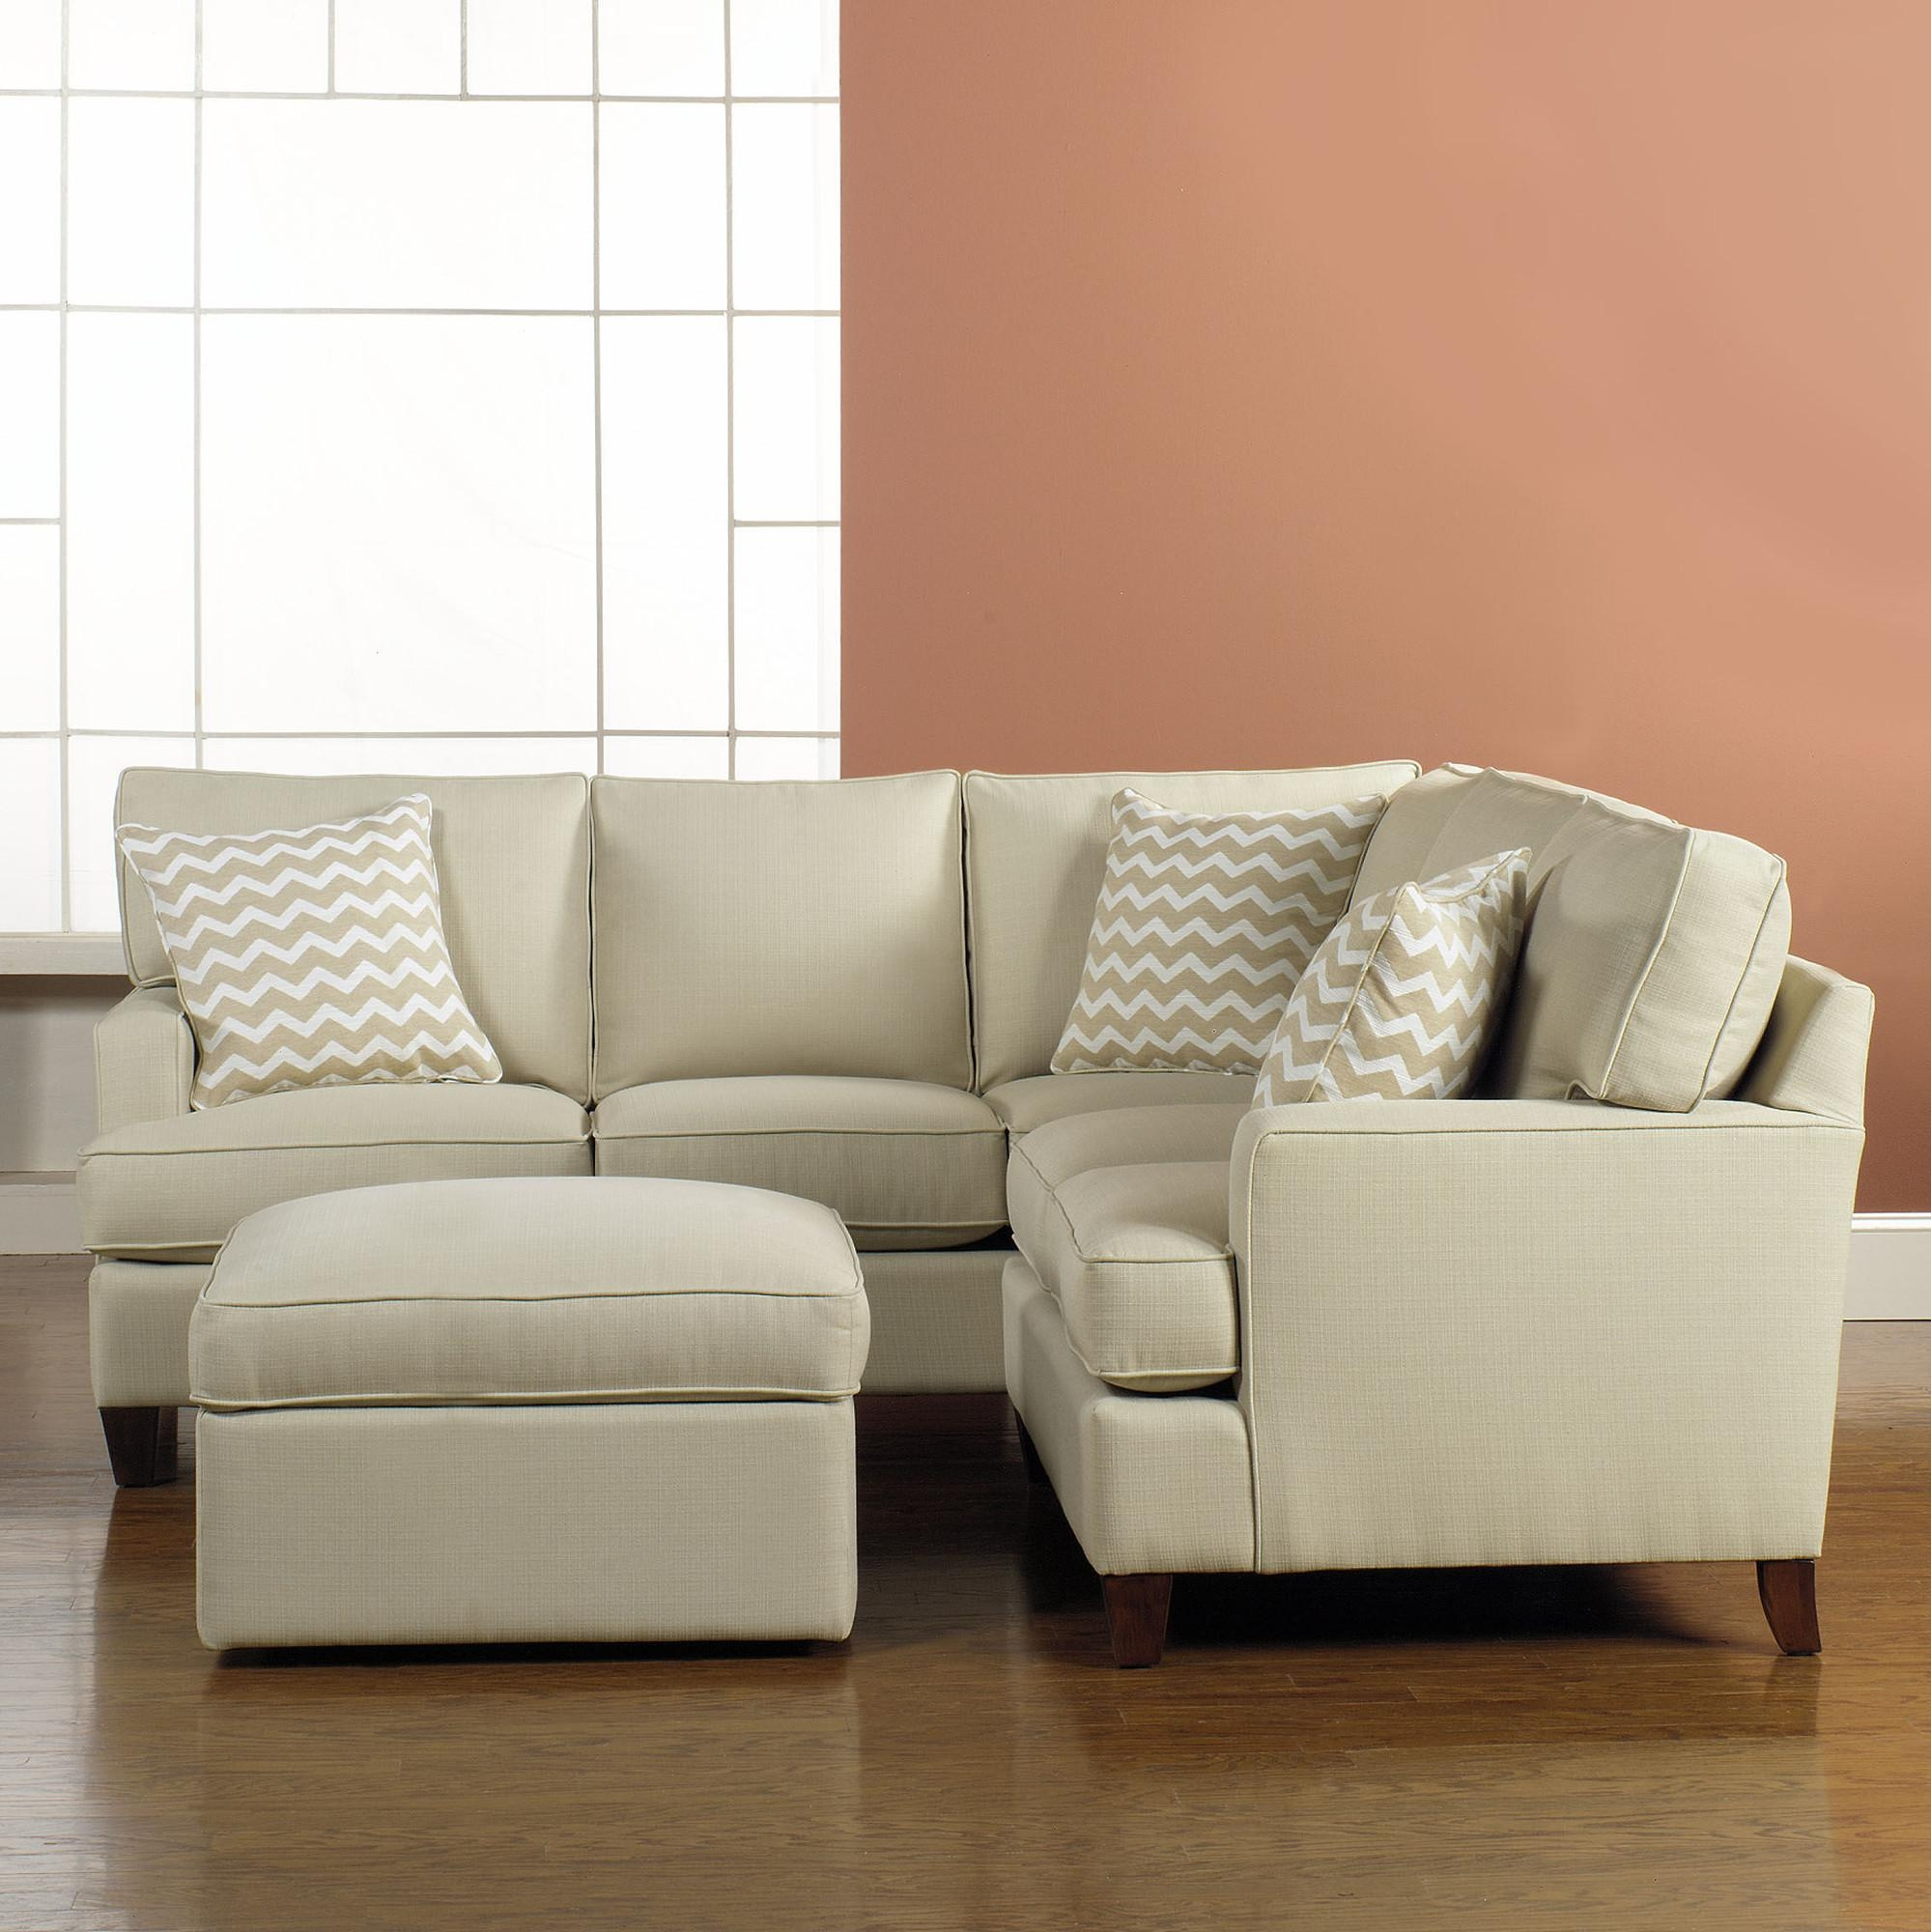 Exellent Couches For Small Apartments Sectional Sofas Spaces Within Mini Sectional Sofas (View 14 of 20)